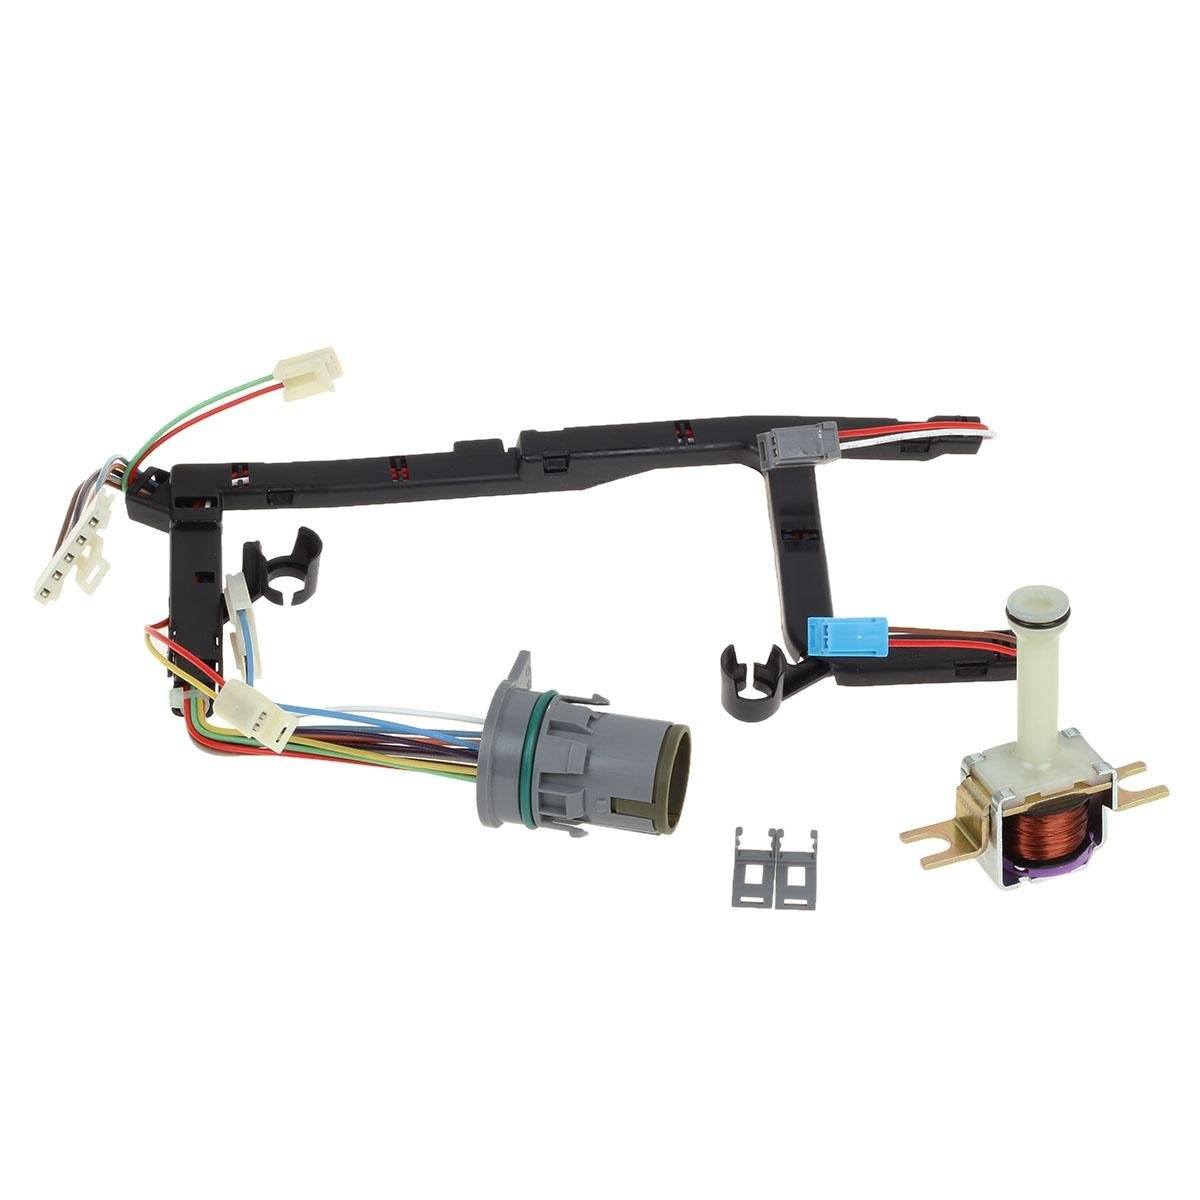 medium resolution of universal 4l60e transmission solenoid internal wire harness with tcc for 1993 2002 gm in wire from automobiles motorcycles on aliexpress com alibaba